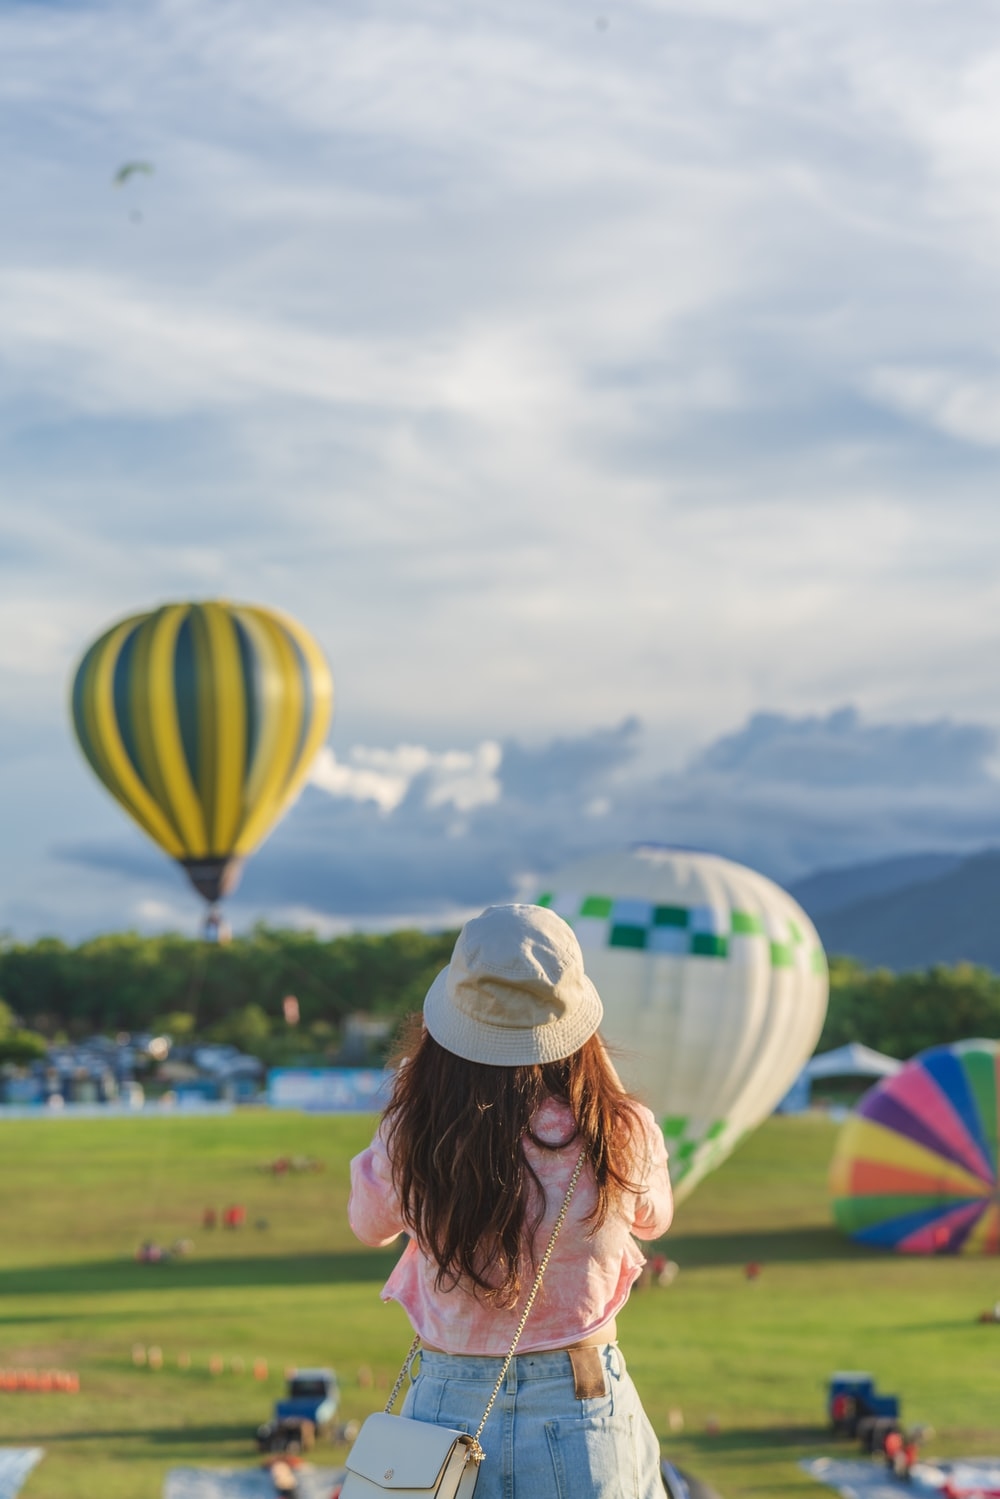 woman in white sun hat holding yellow green and blue hot air balloon